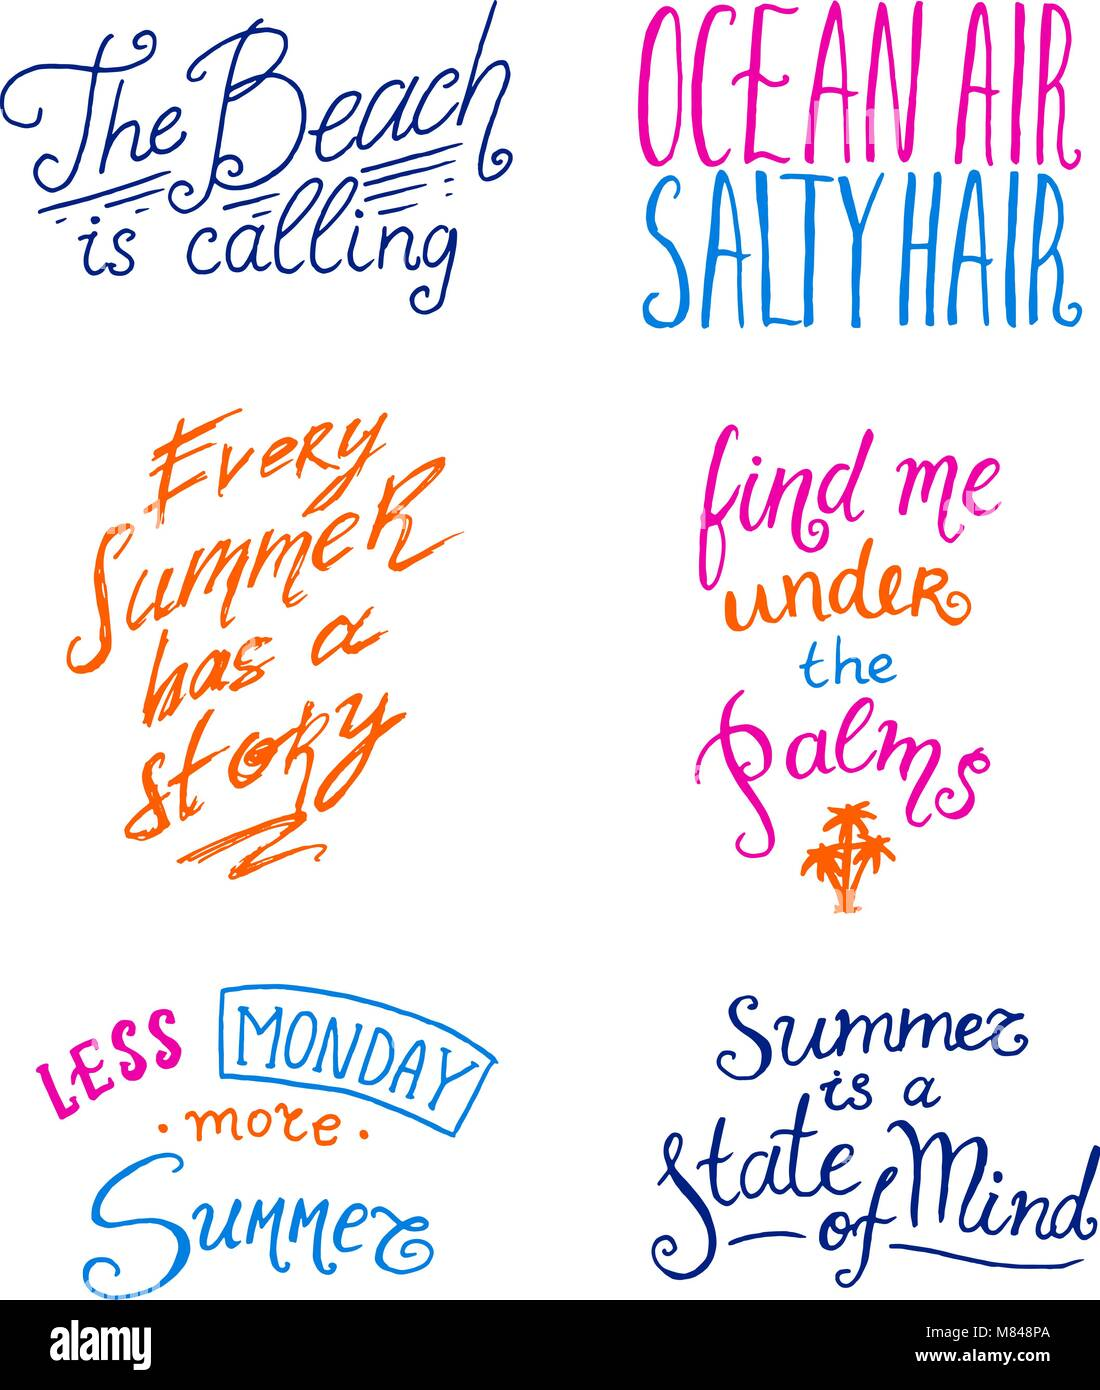 Summer Quotes inspiration, travel and journey phrases ...